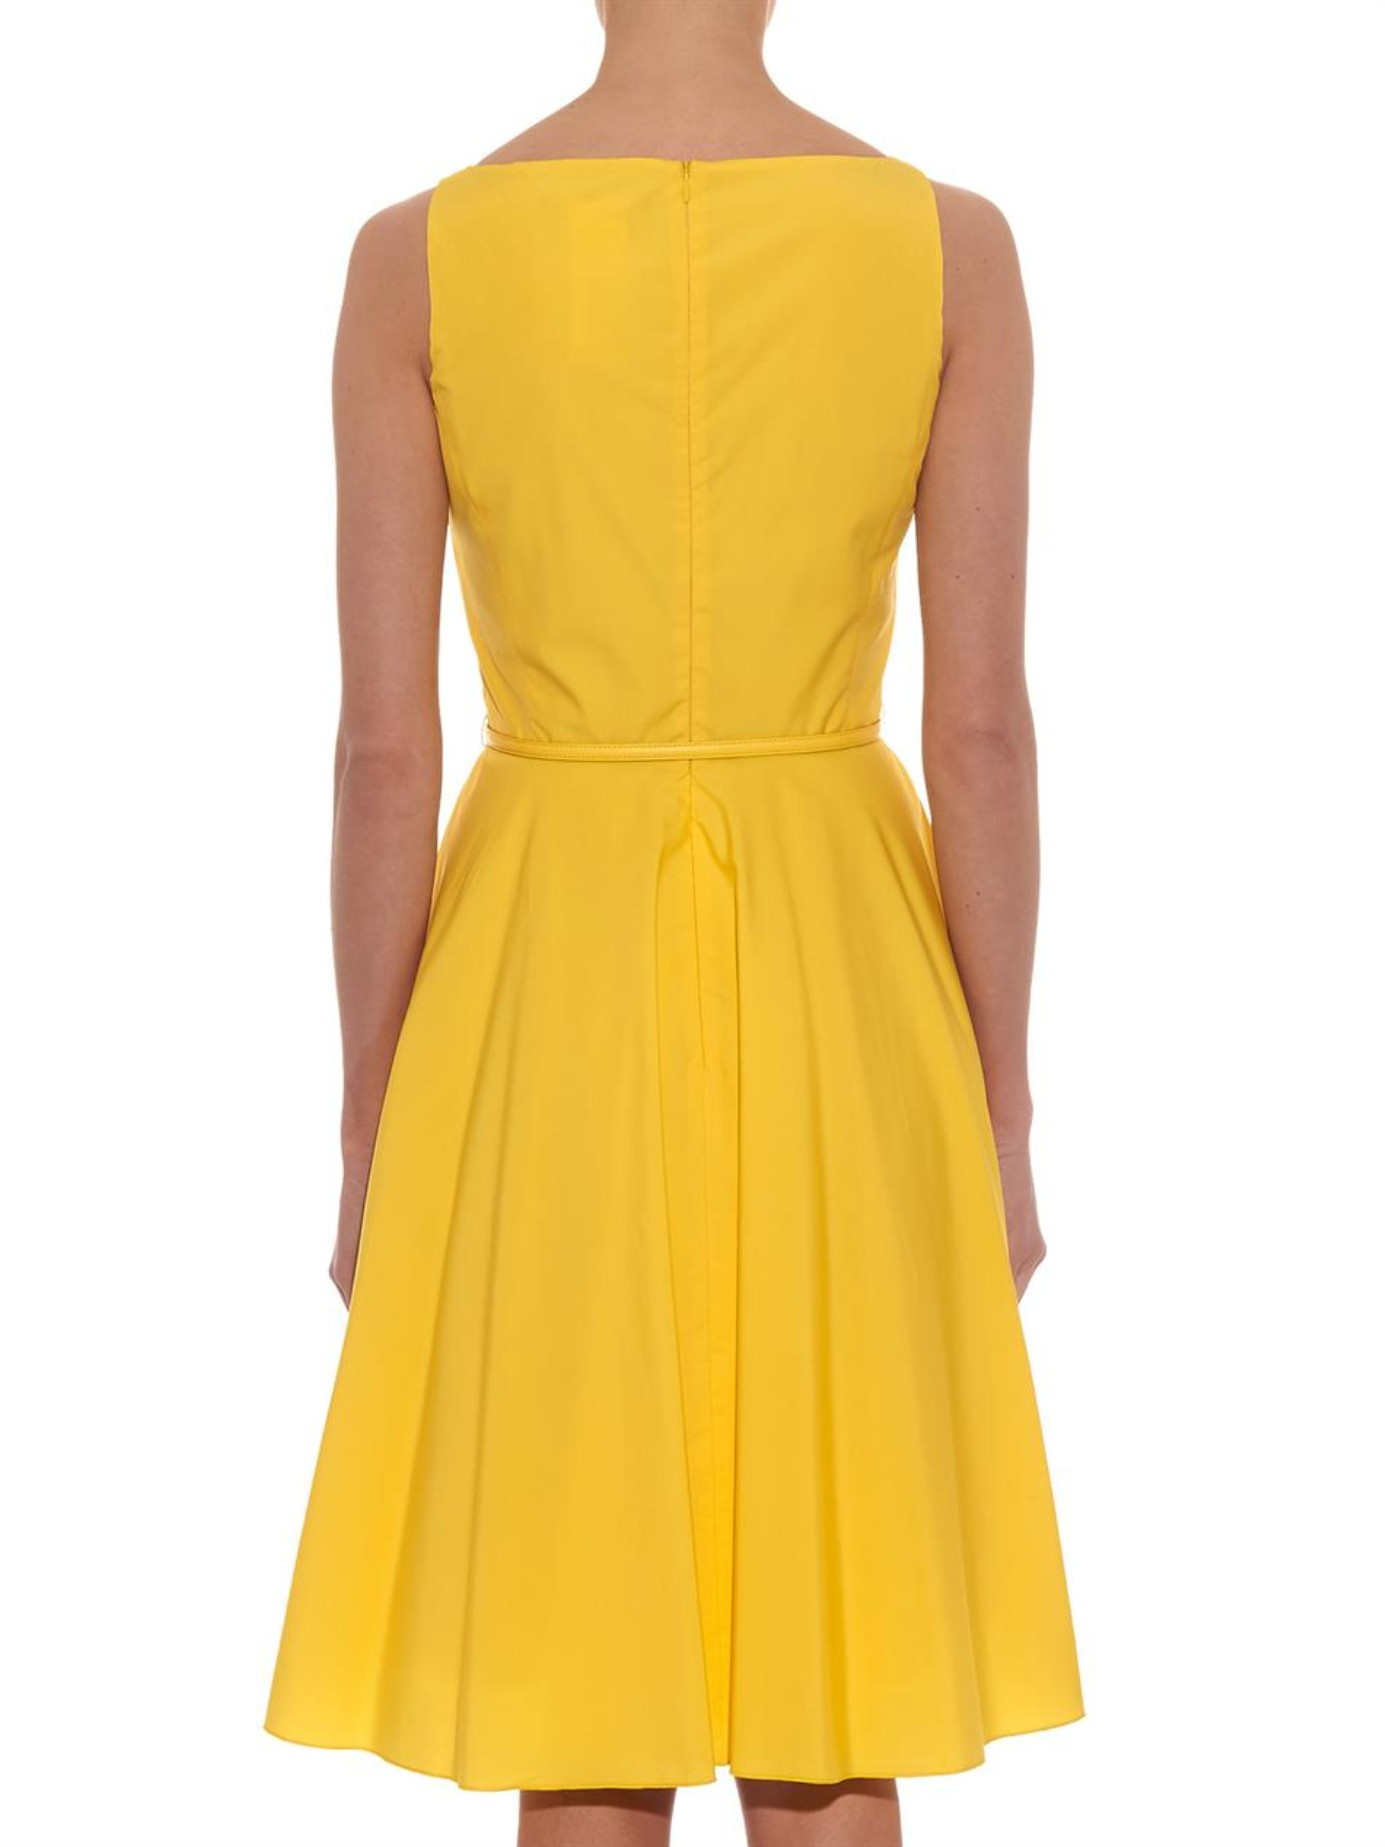 Max mara studio Asiago Dress in Yellow